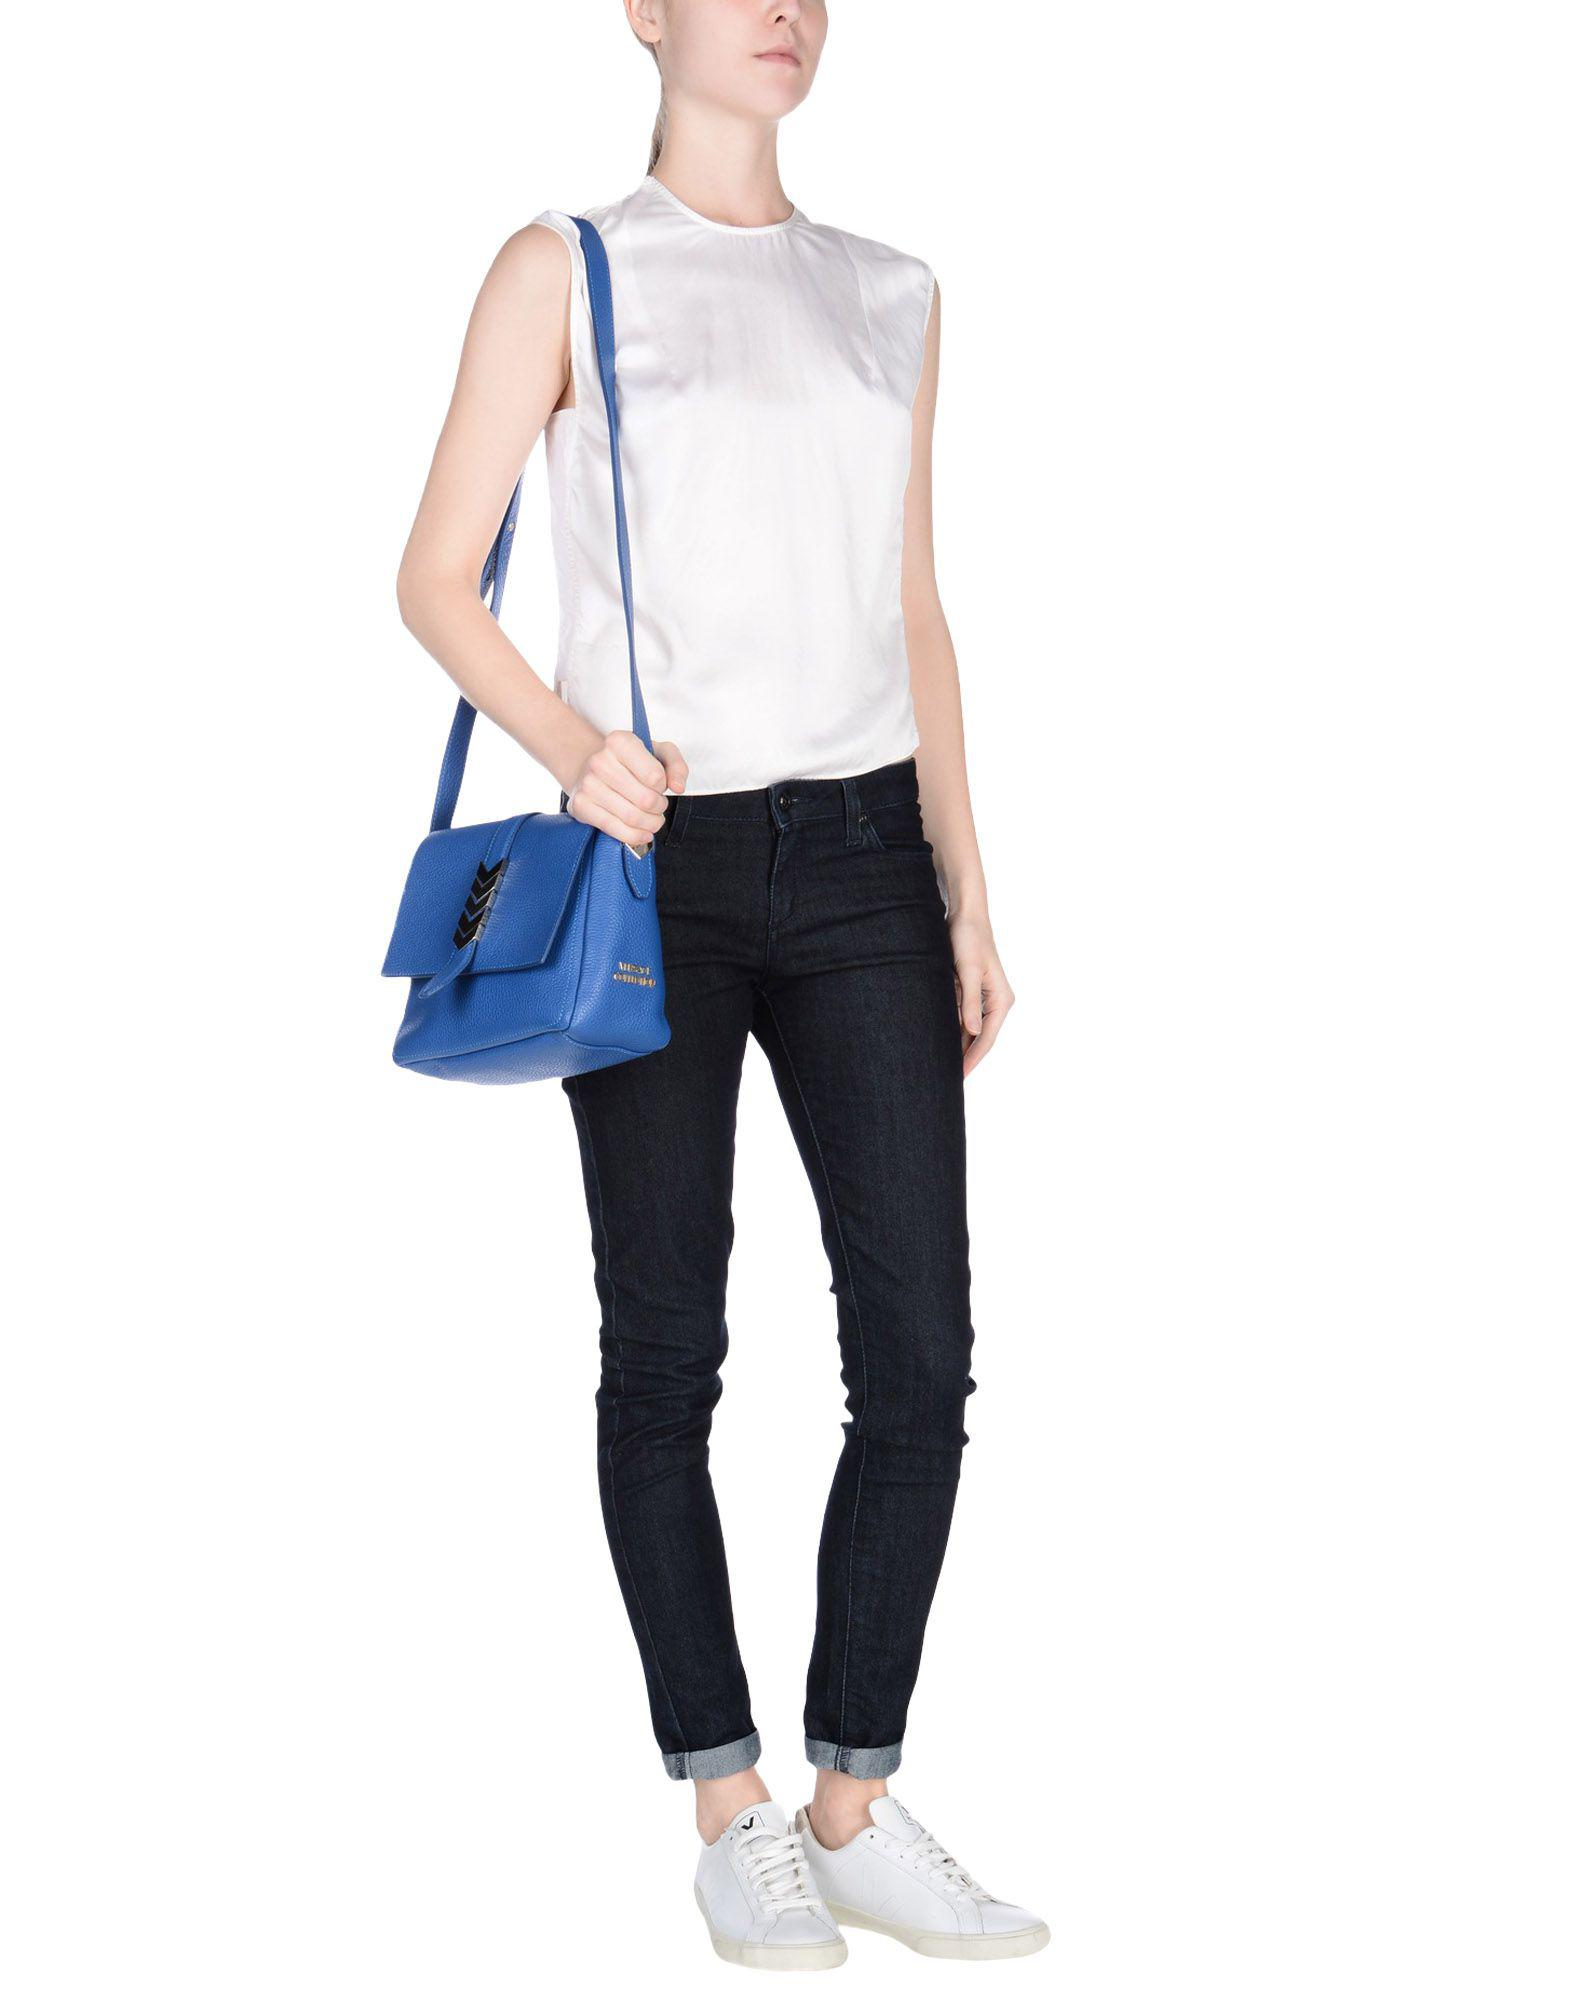 Versace Leather Cross-body Bag in Blue